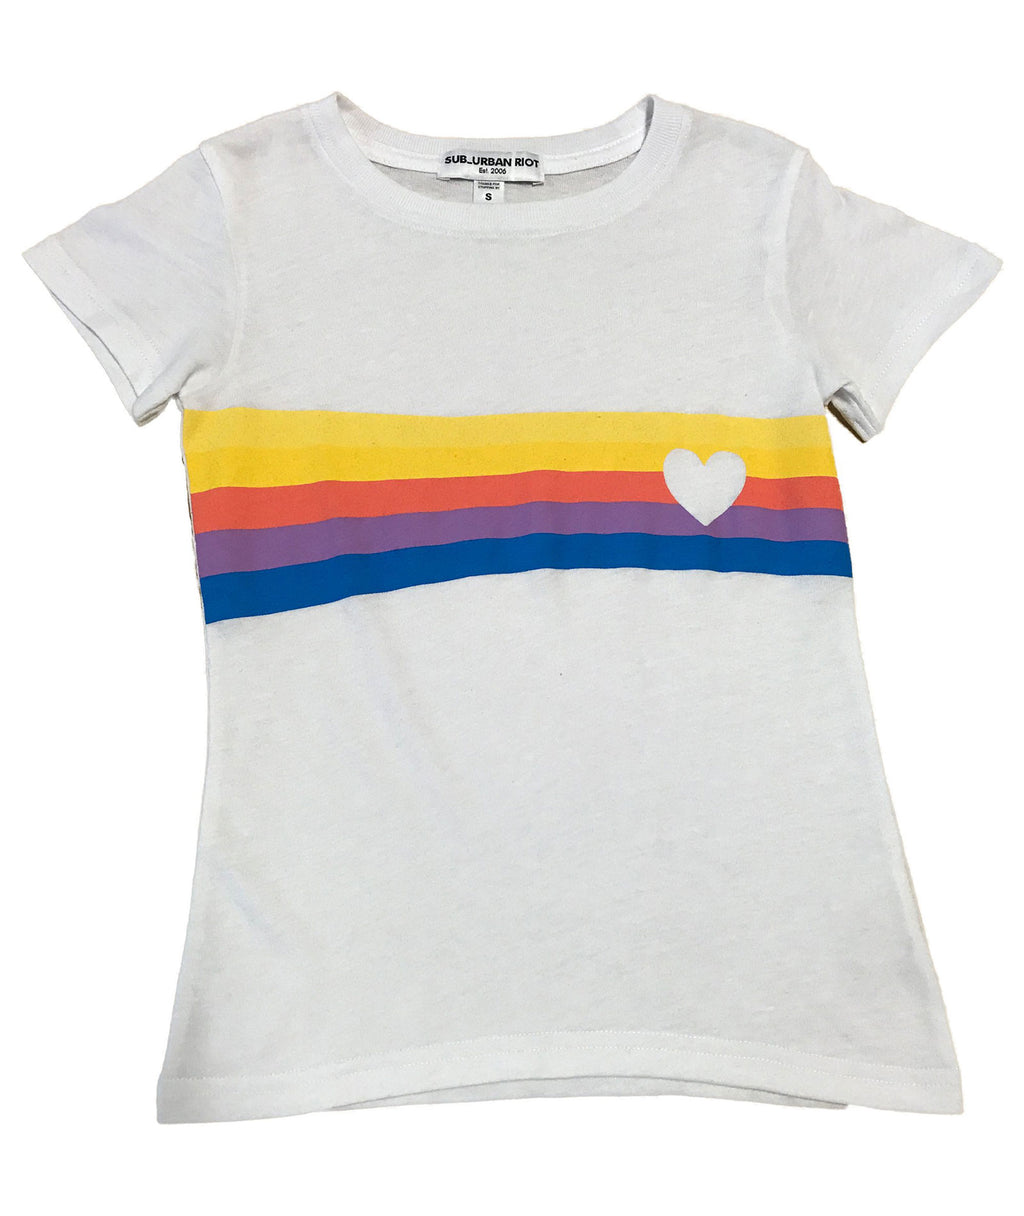 Sub_Urban Riot Girls Heart Stripe Tee